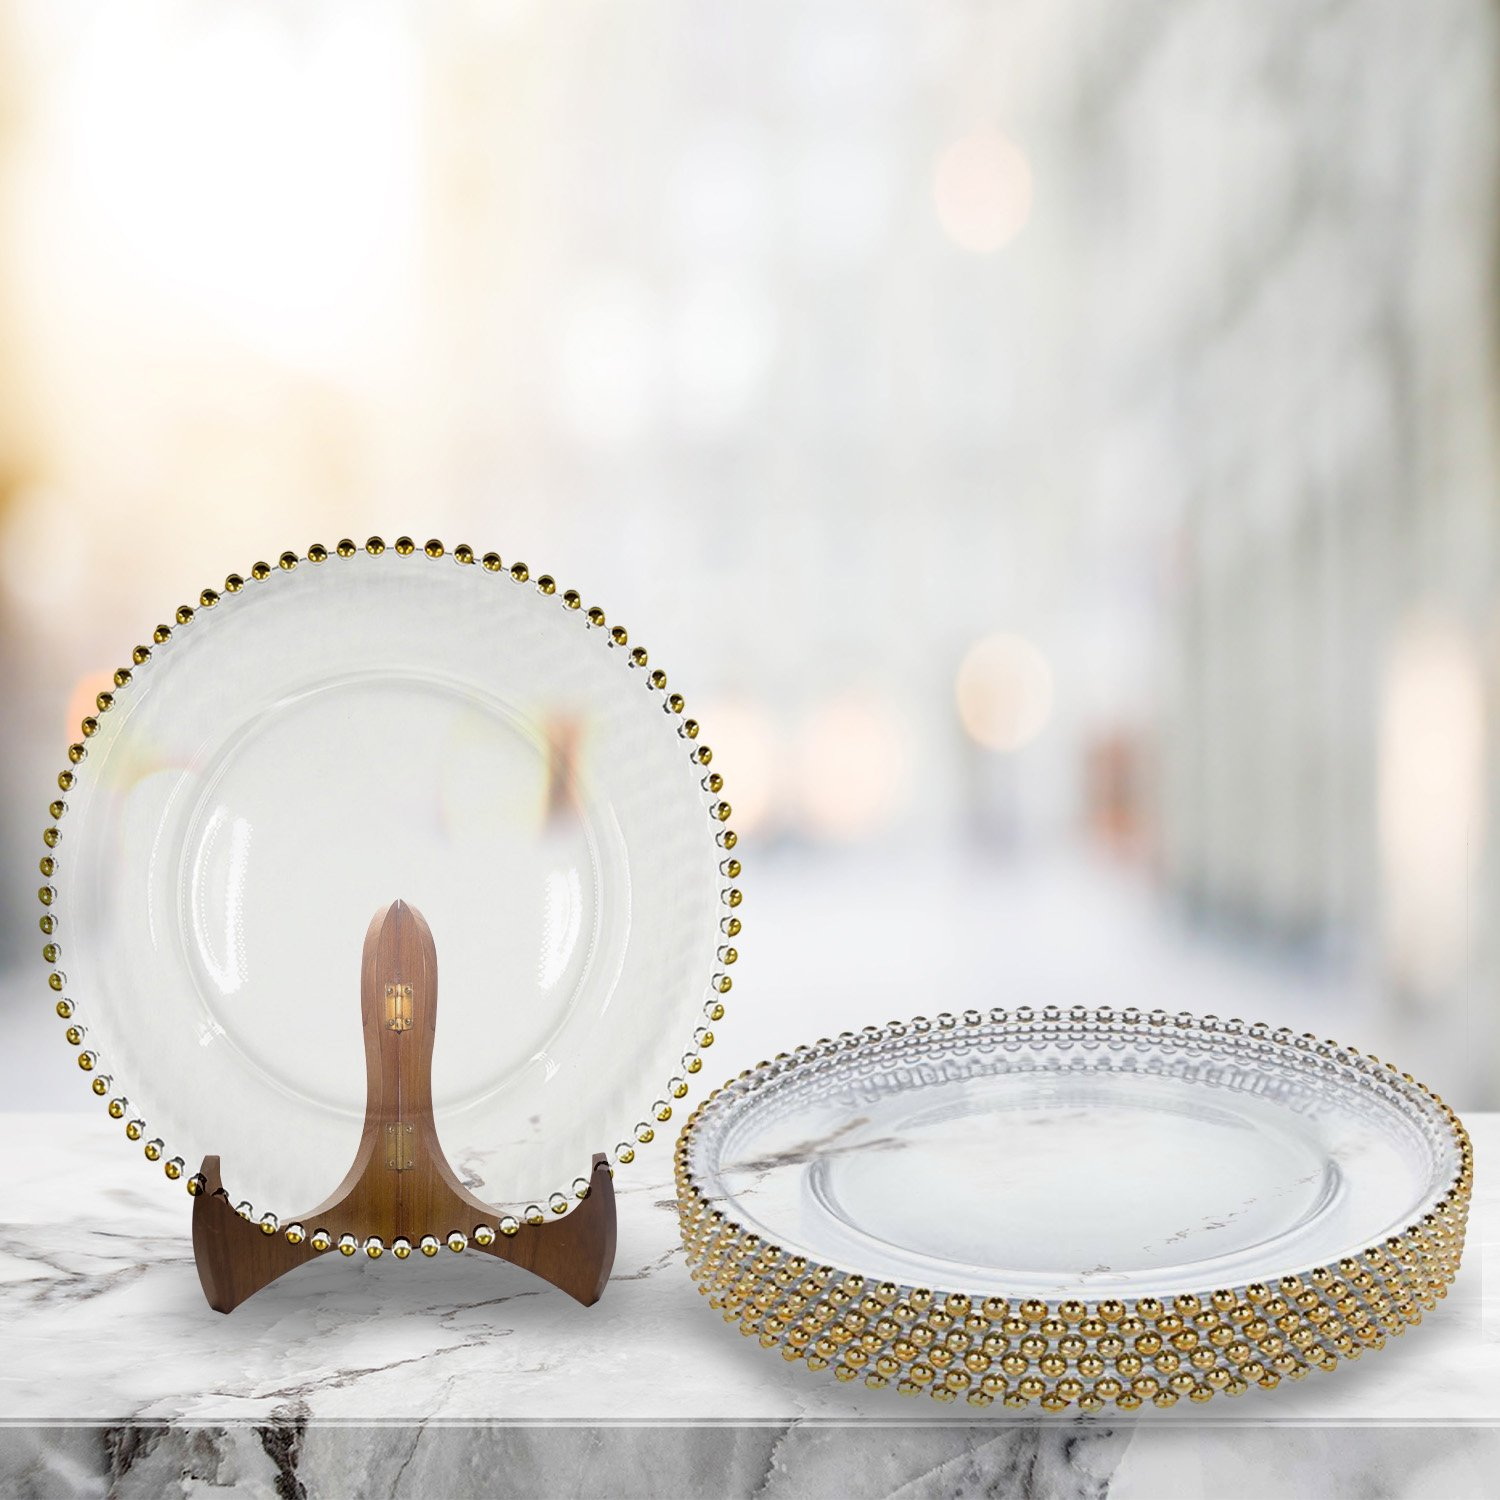 Excellent Designs Wedding Decorations Charger Plates Gold Beads Clear Glass Charger Plates Set of 8, and Beautiful Gold Wedding Plate Chargers